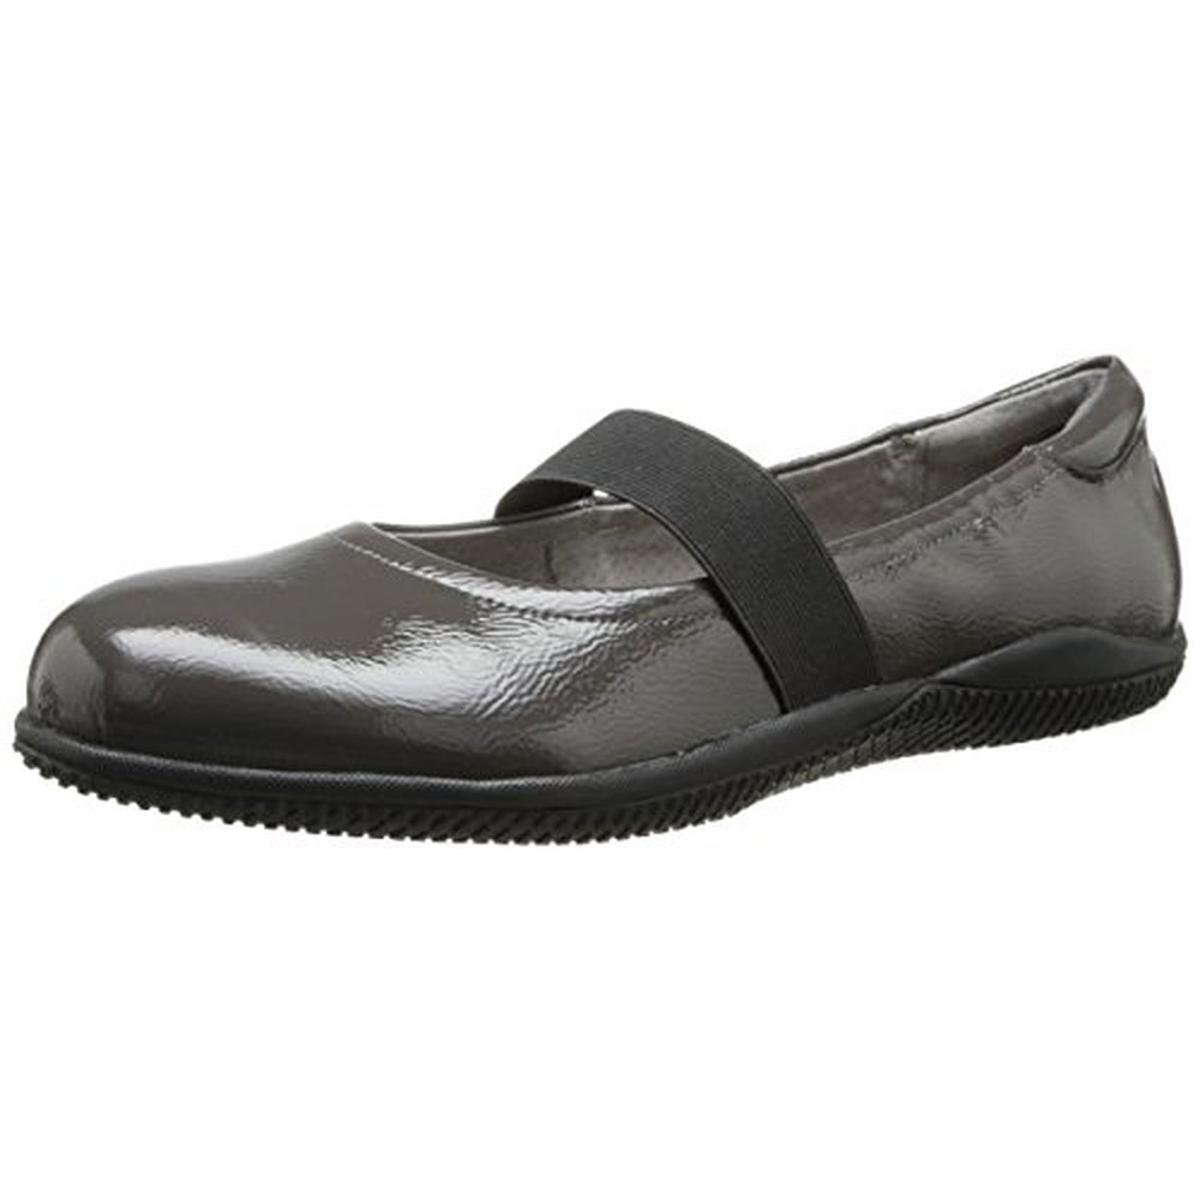 SoftWalk Womens High Point Patent Leather Casual Mary Janes by SoftWalk